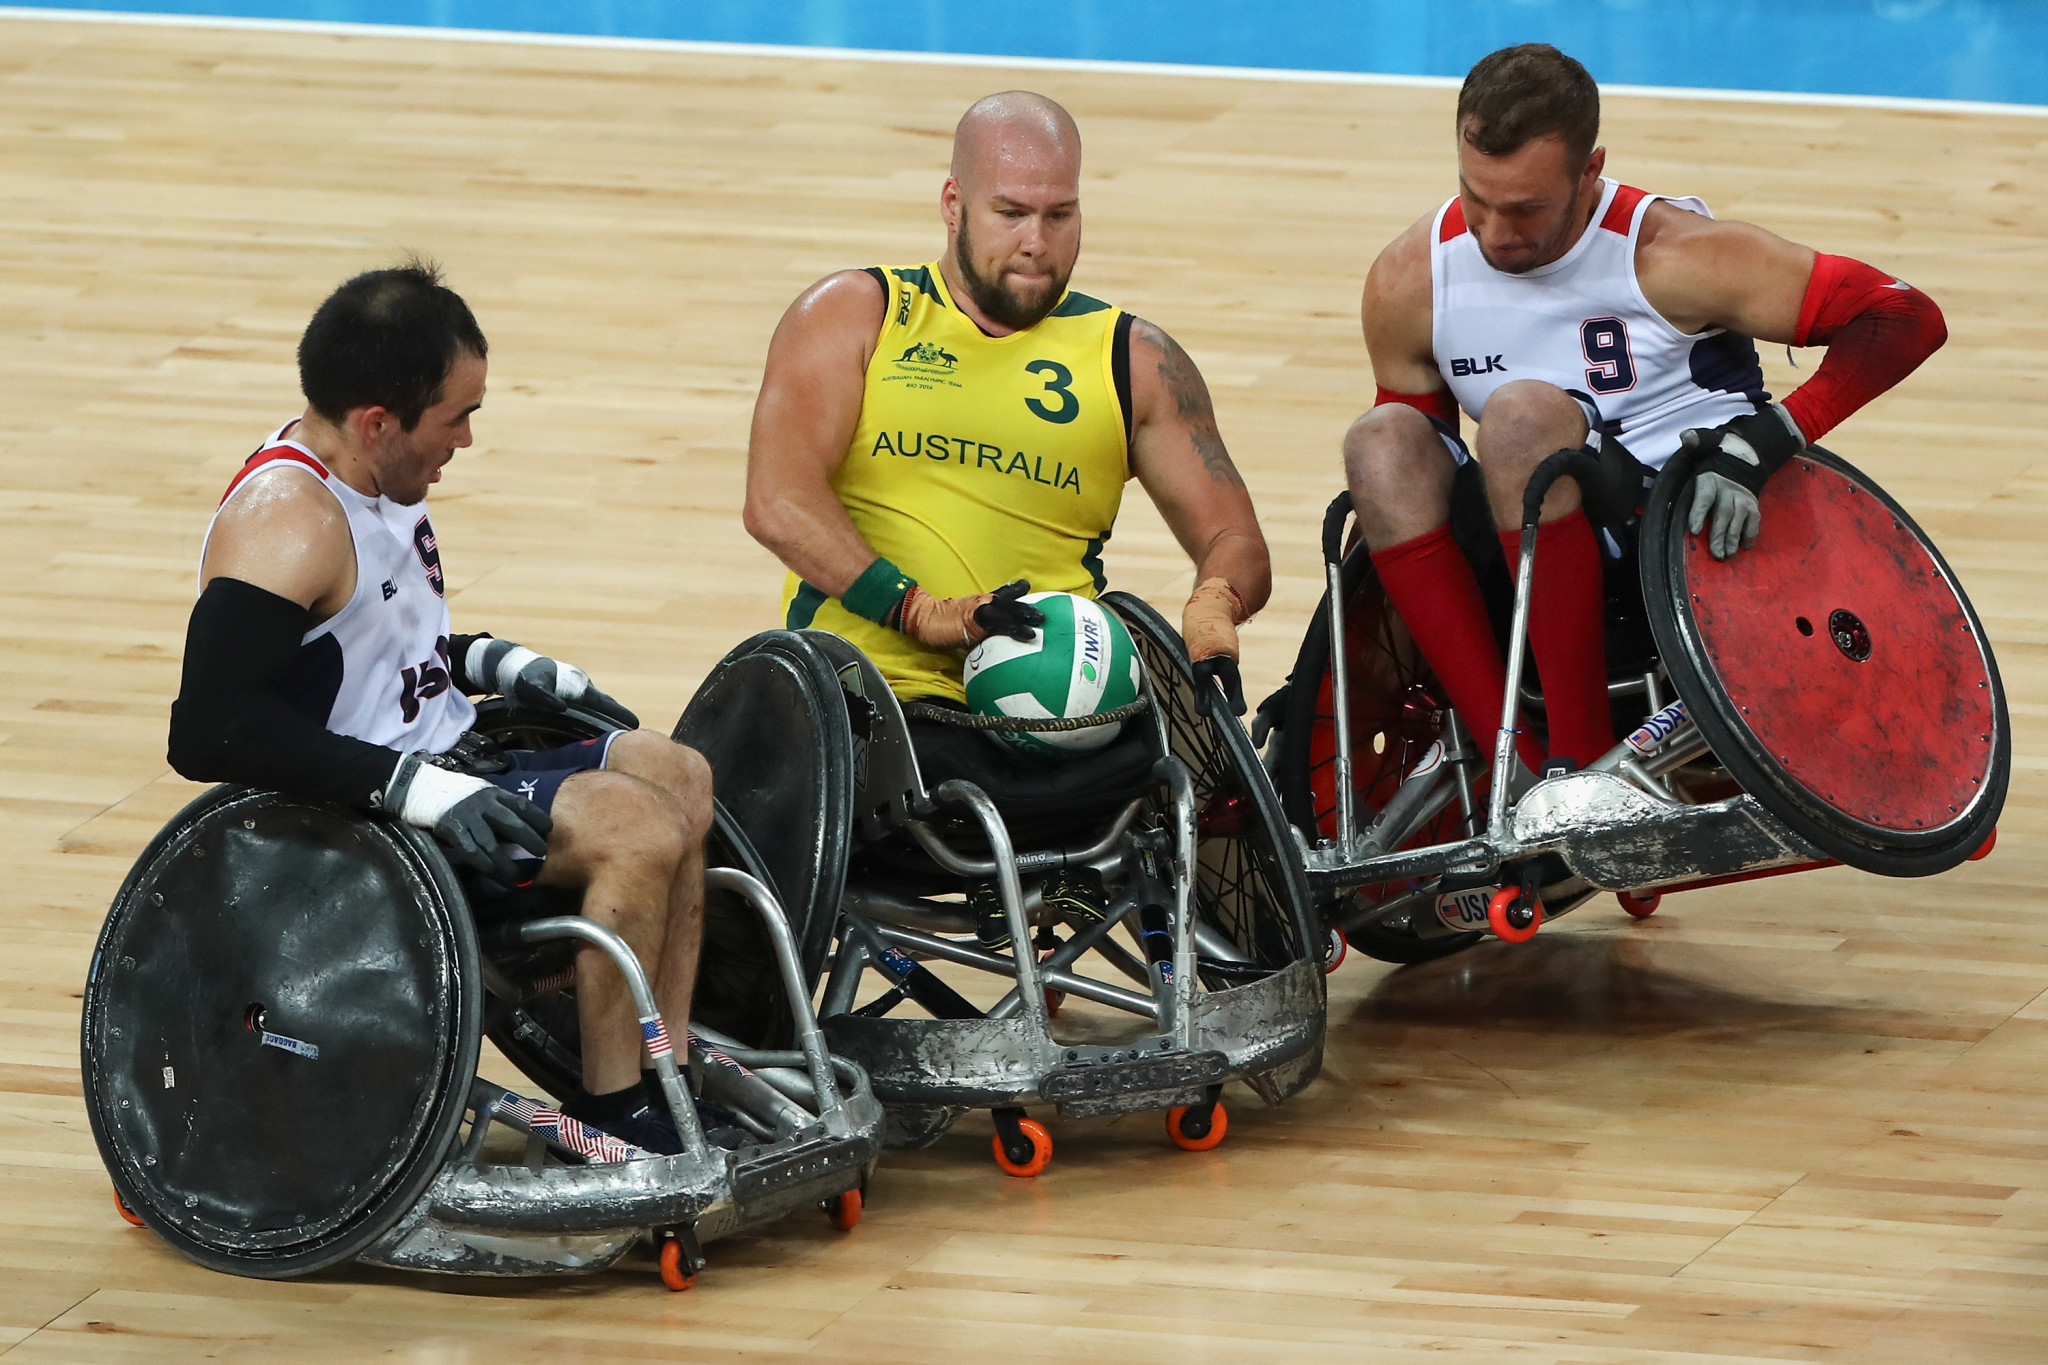 Ryley Batt helped Australia to wheelchair rugby glory at the London 2012 and Rio 2016 ©Getty Images